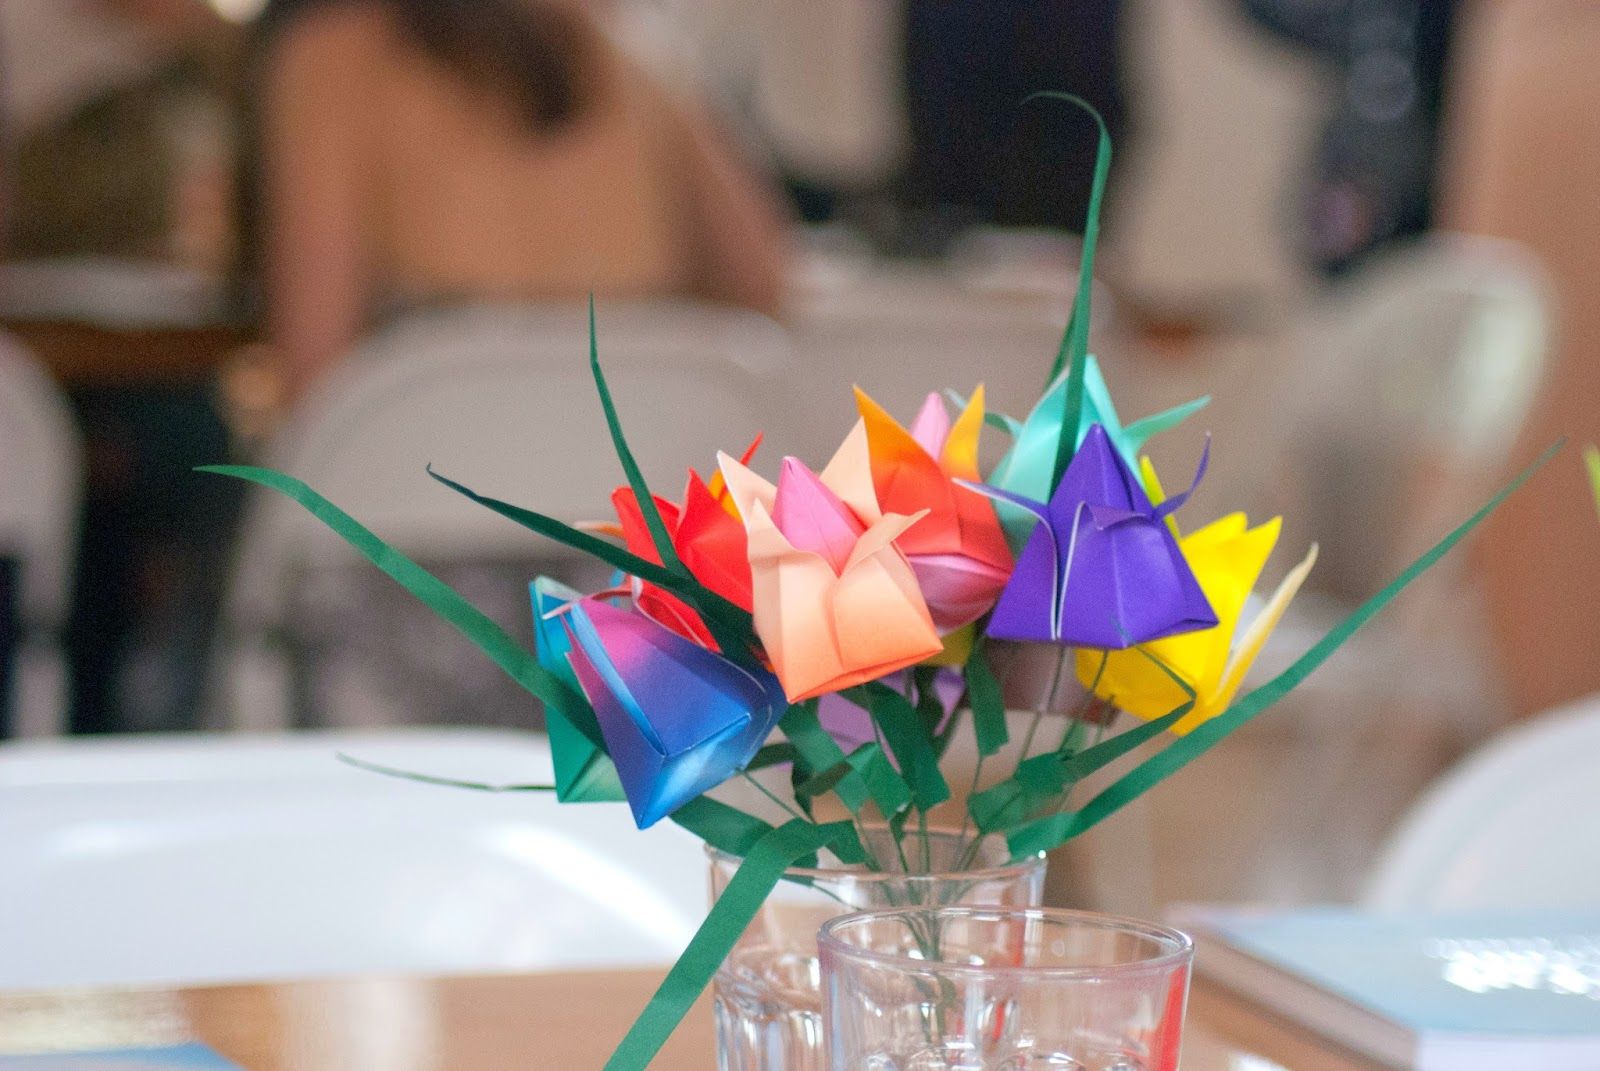 viking arty party lumiere london - 100 Ways to 30, colourful origami, mindful origami, origami bouquet, crafts, art, blogging, event